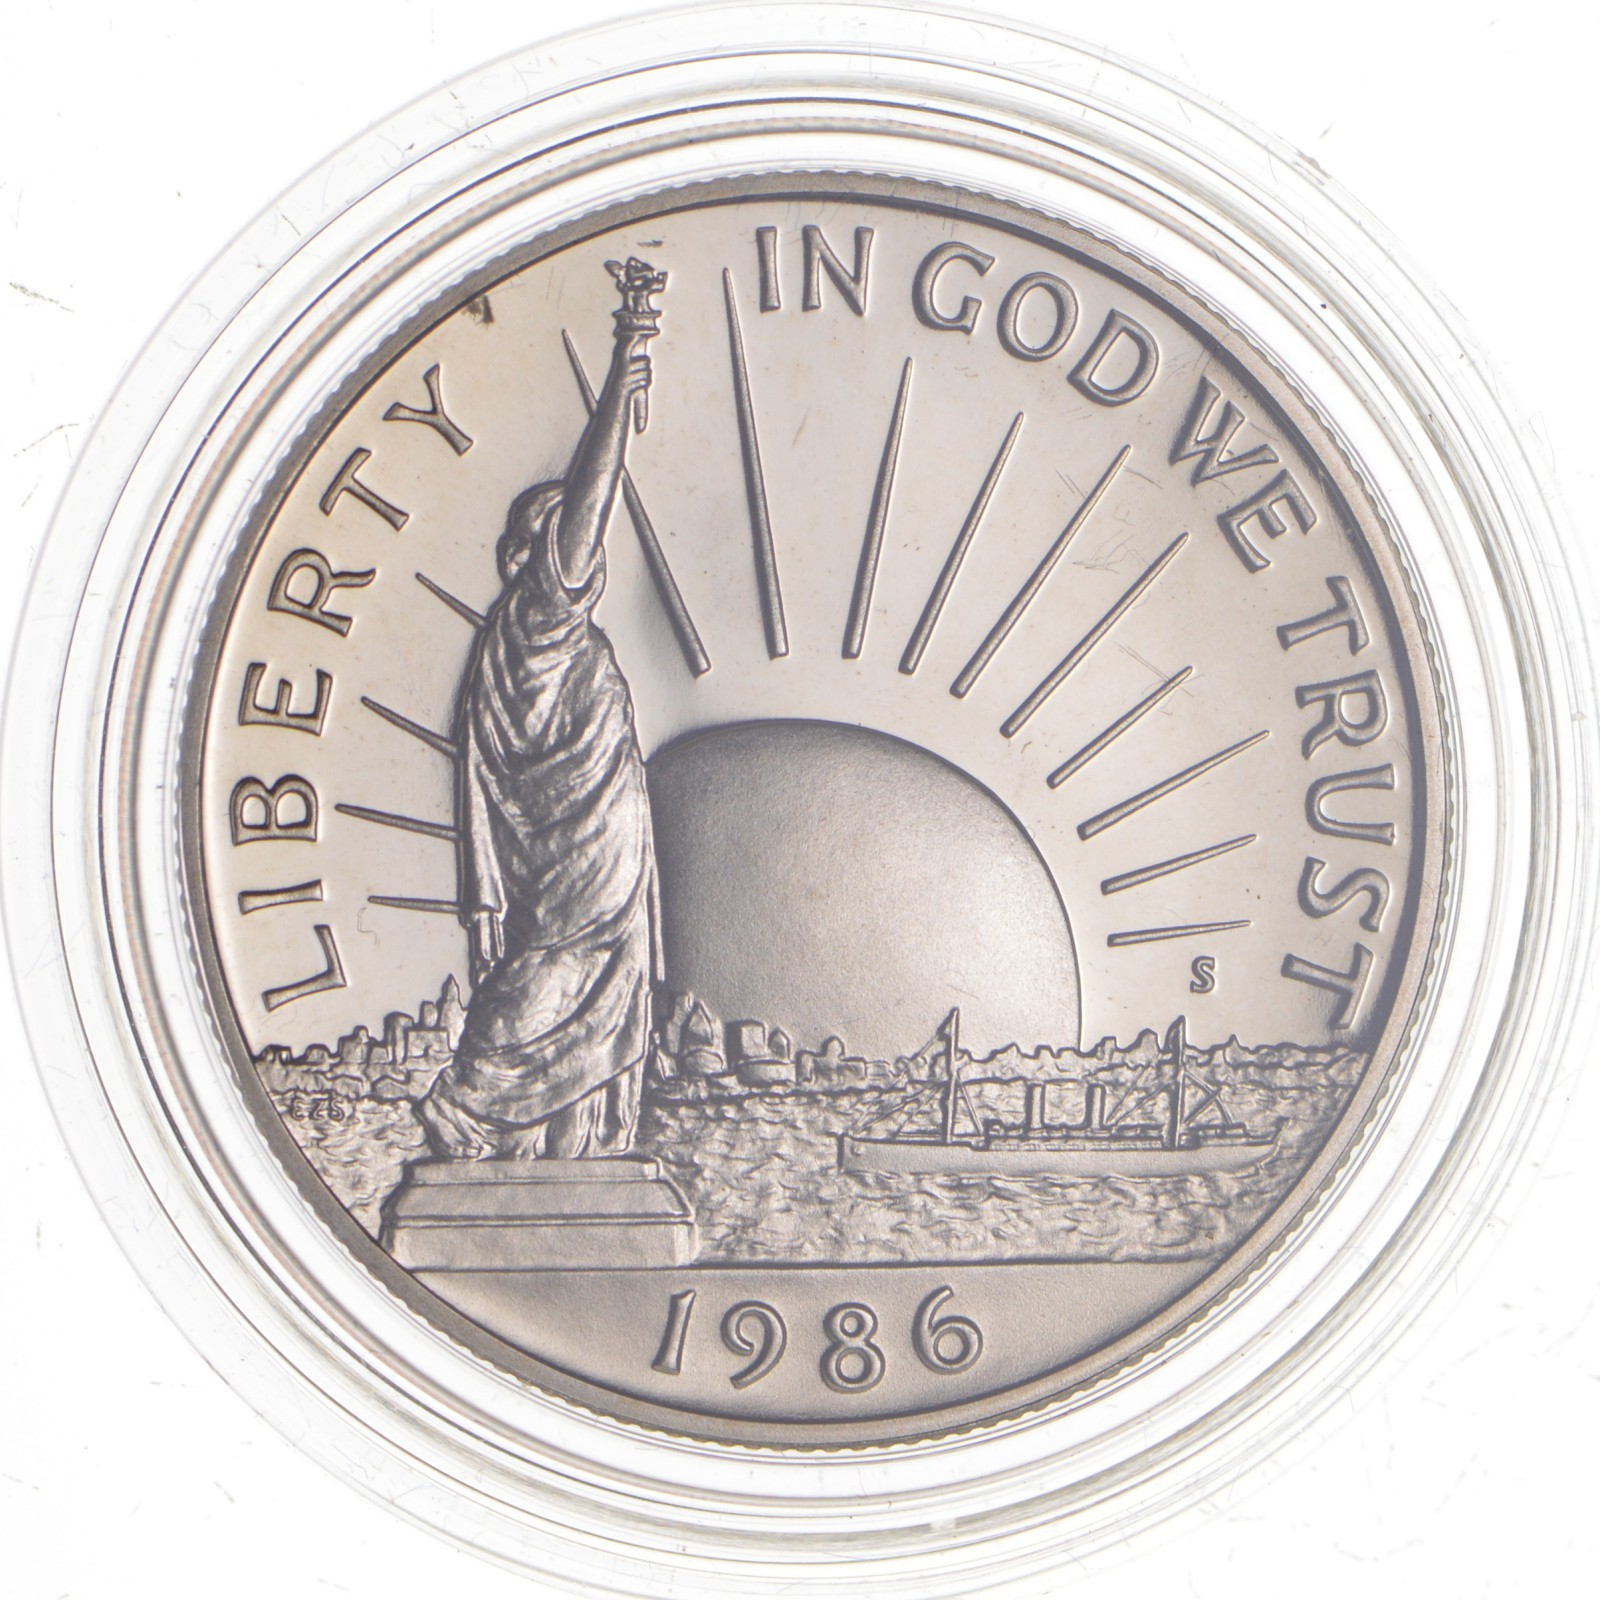 1986 Statue of Liberty Commemorative Half Dollar Proof  Coin in Capsules